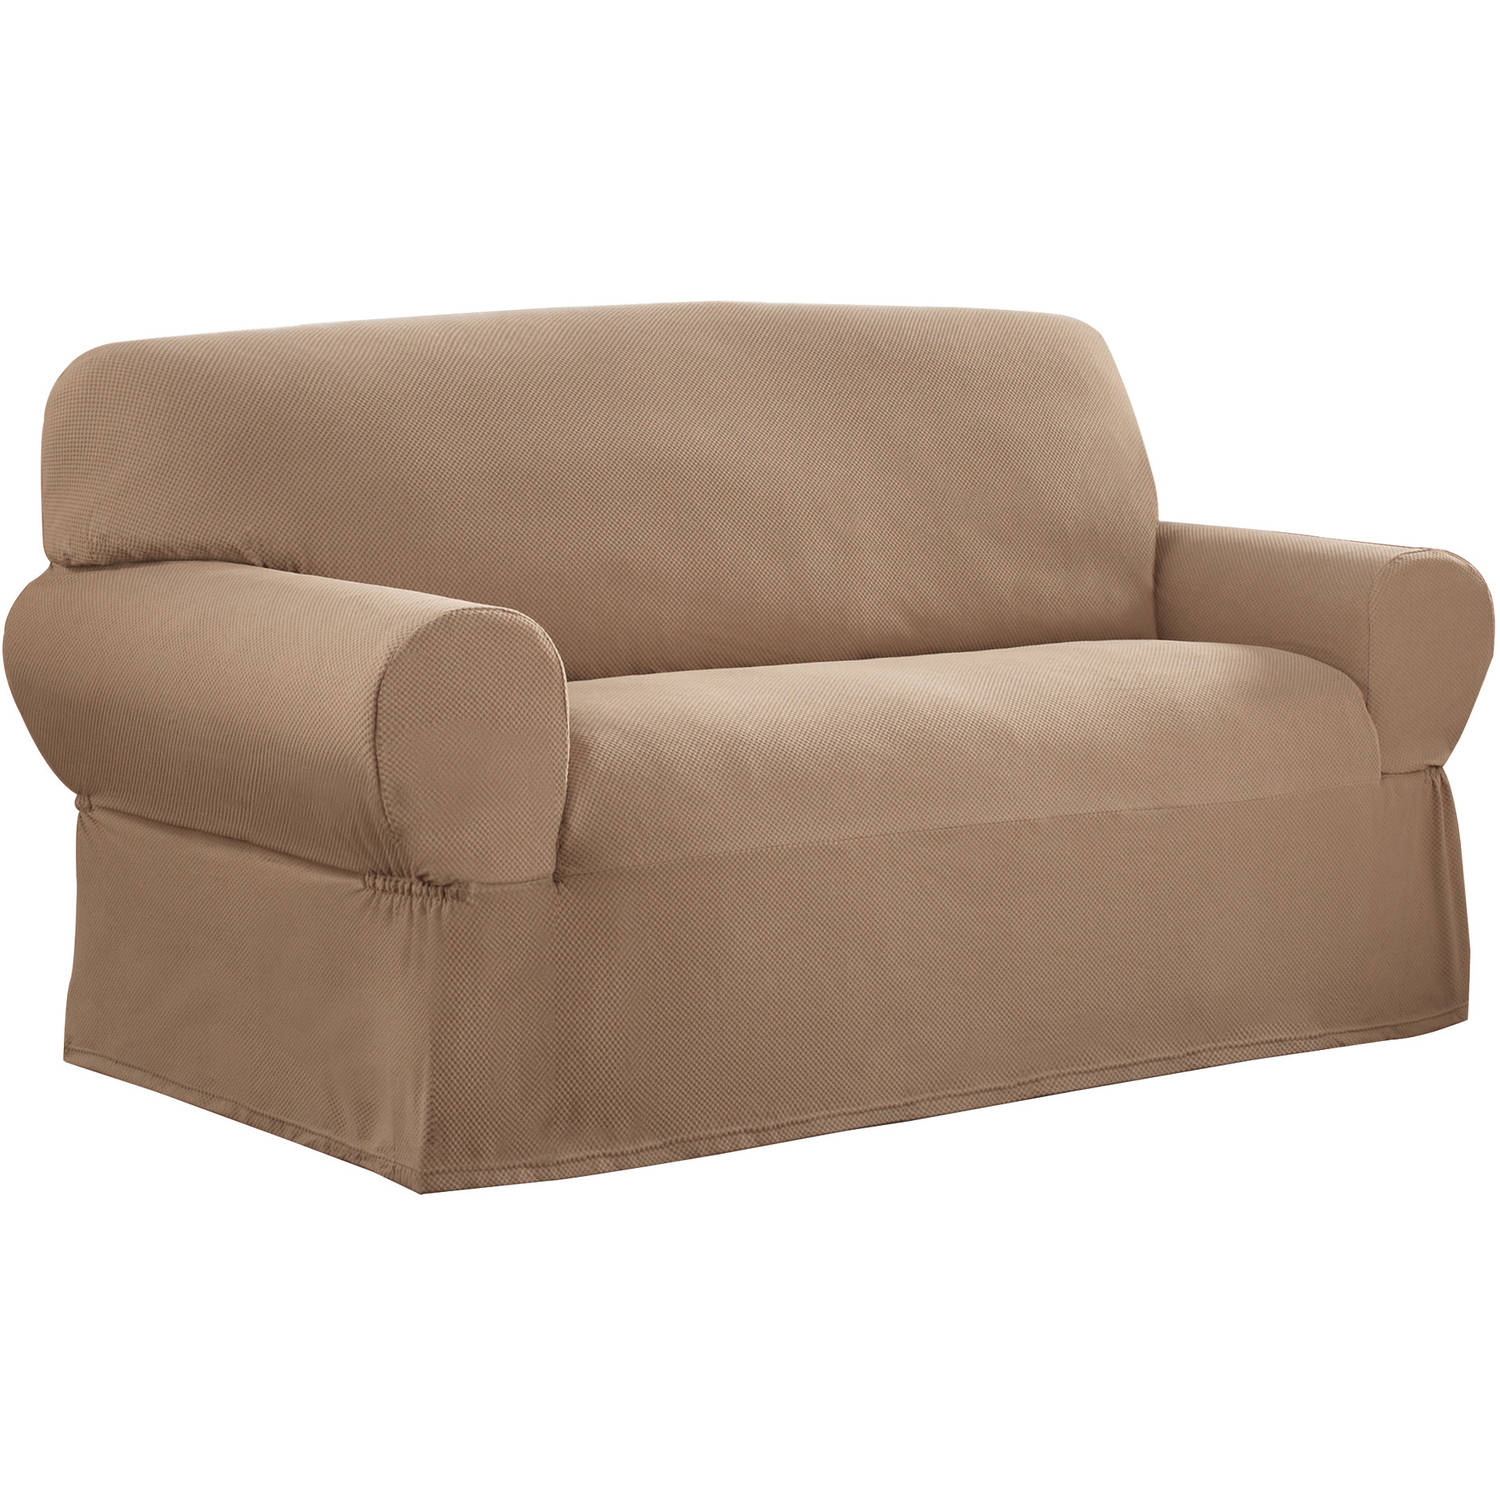 Mainstays 1 Piece Stretch Fabric Loveseat Slipcover Walmart